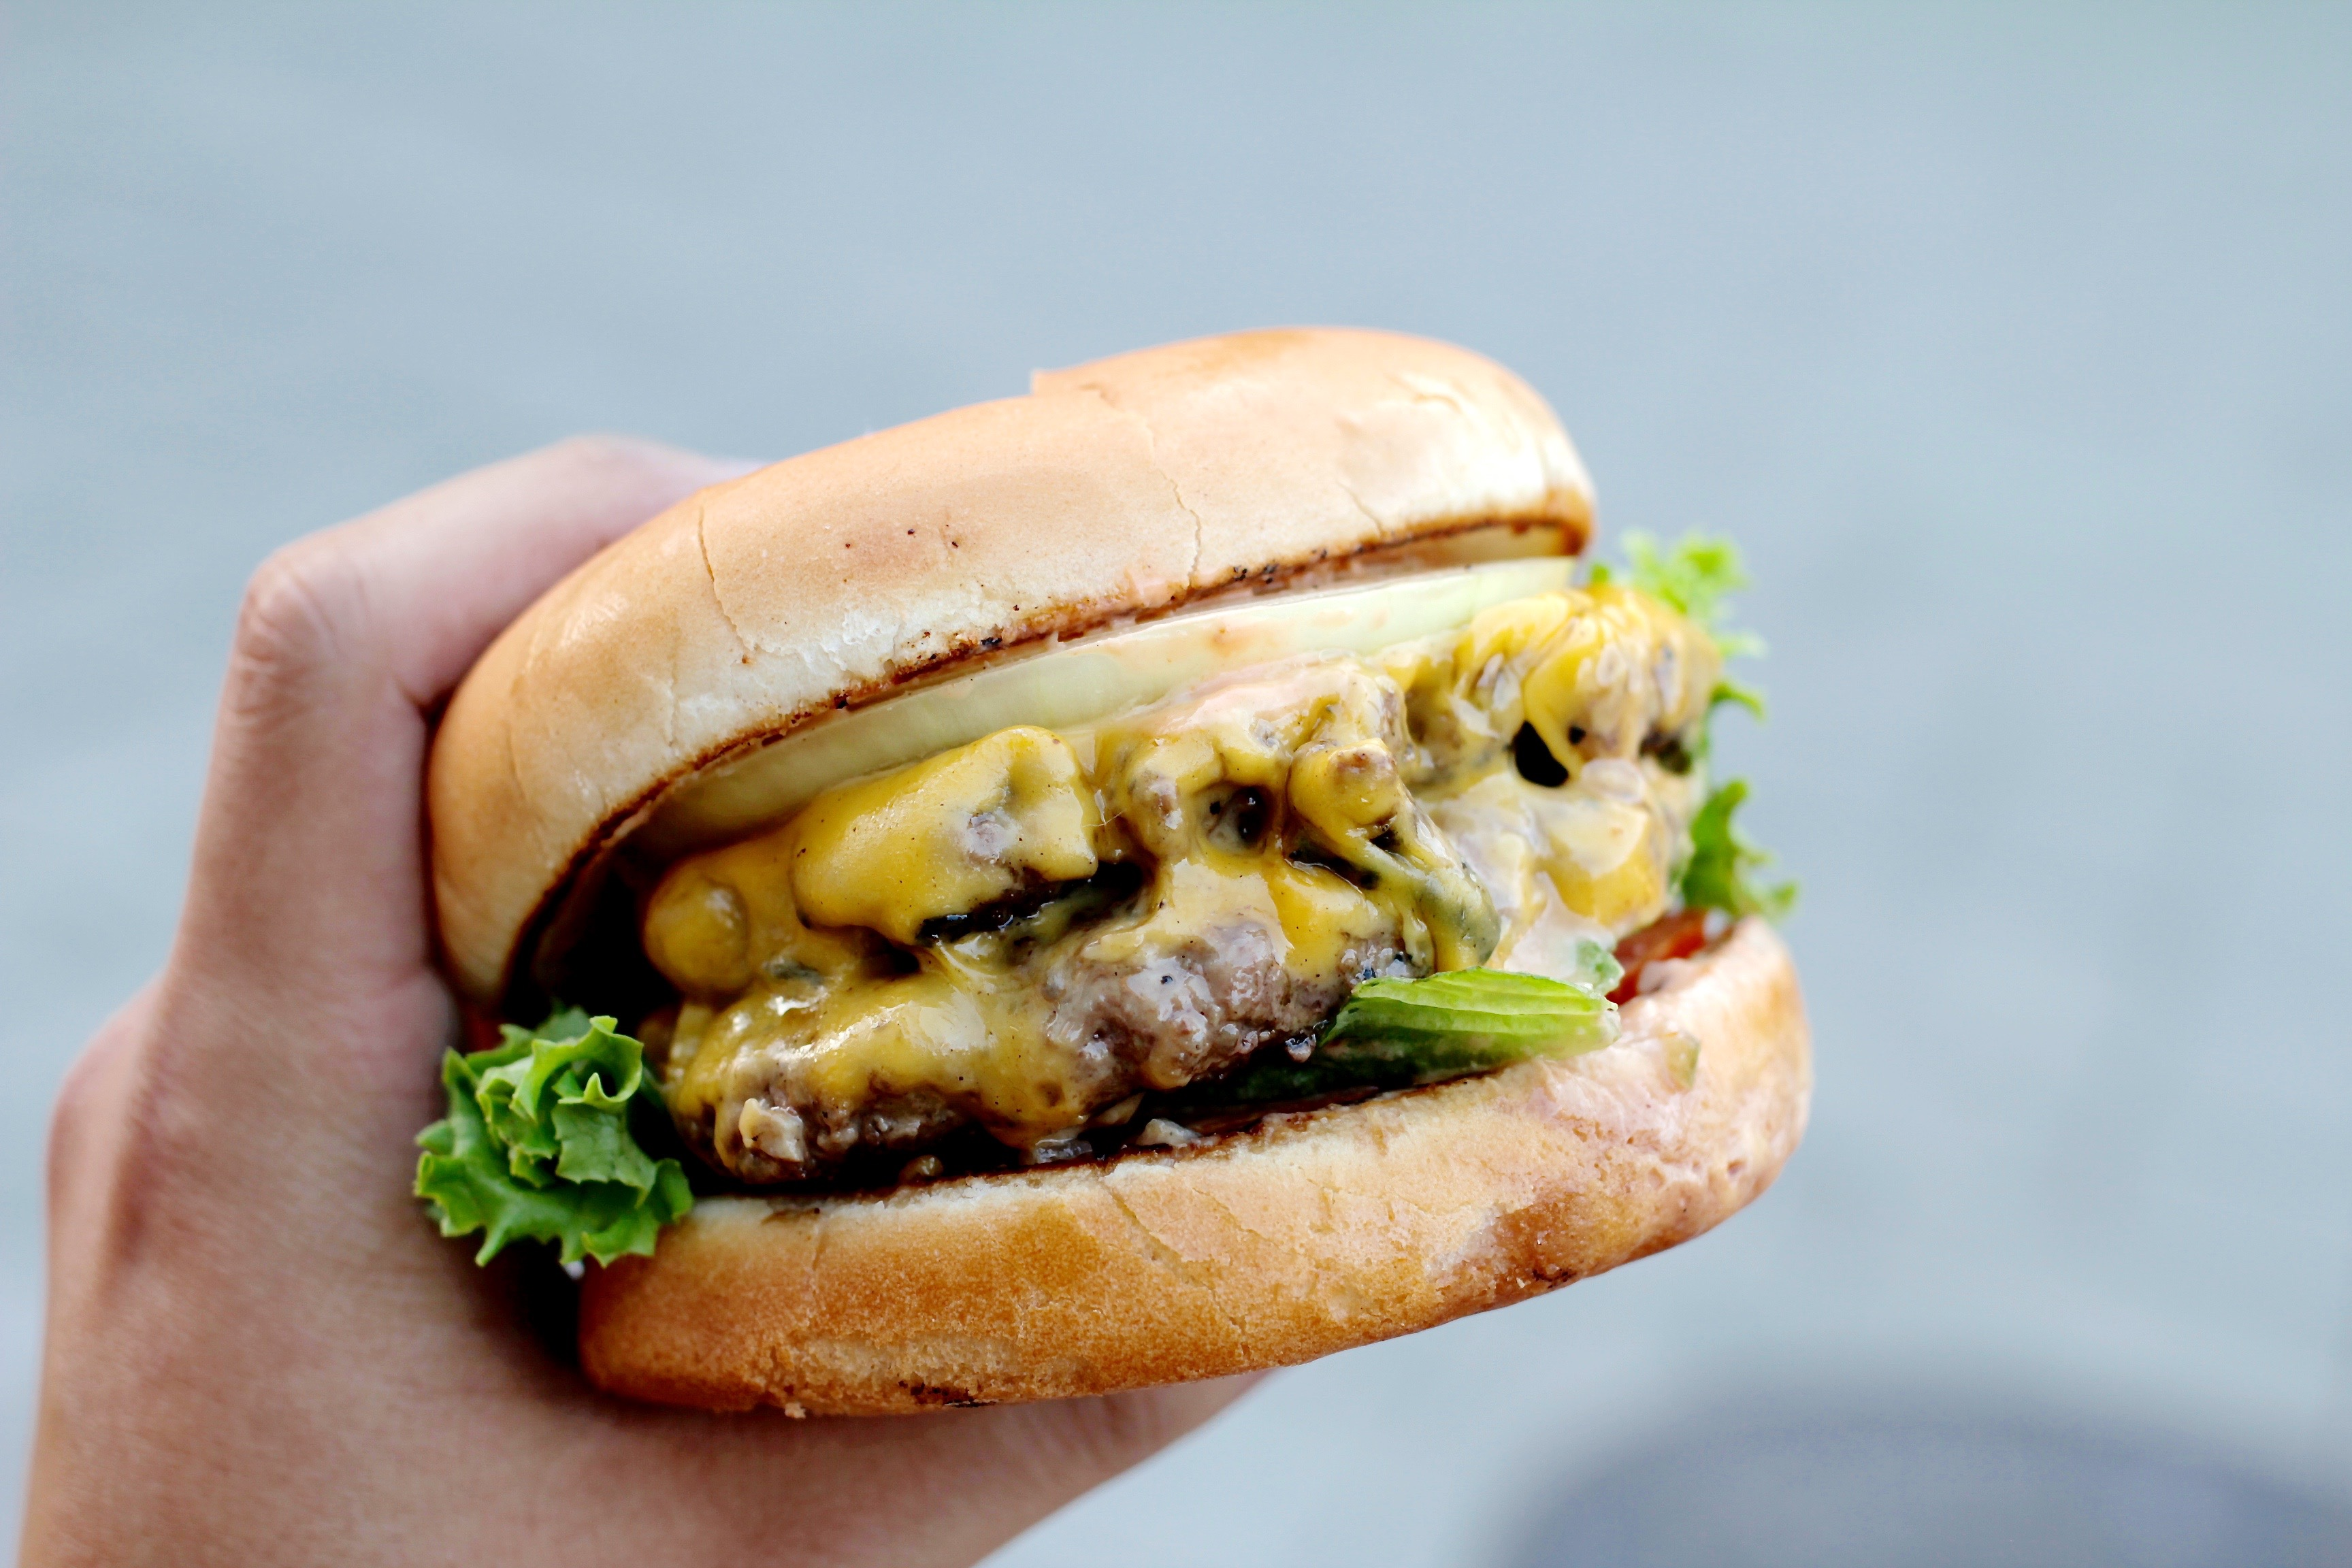 A hand holding a double-patty cheeseburger with thick onion on a gray background.